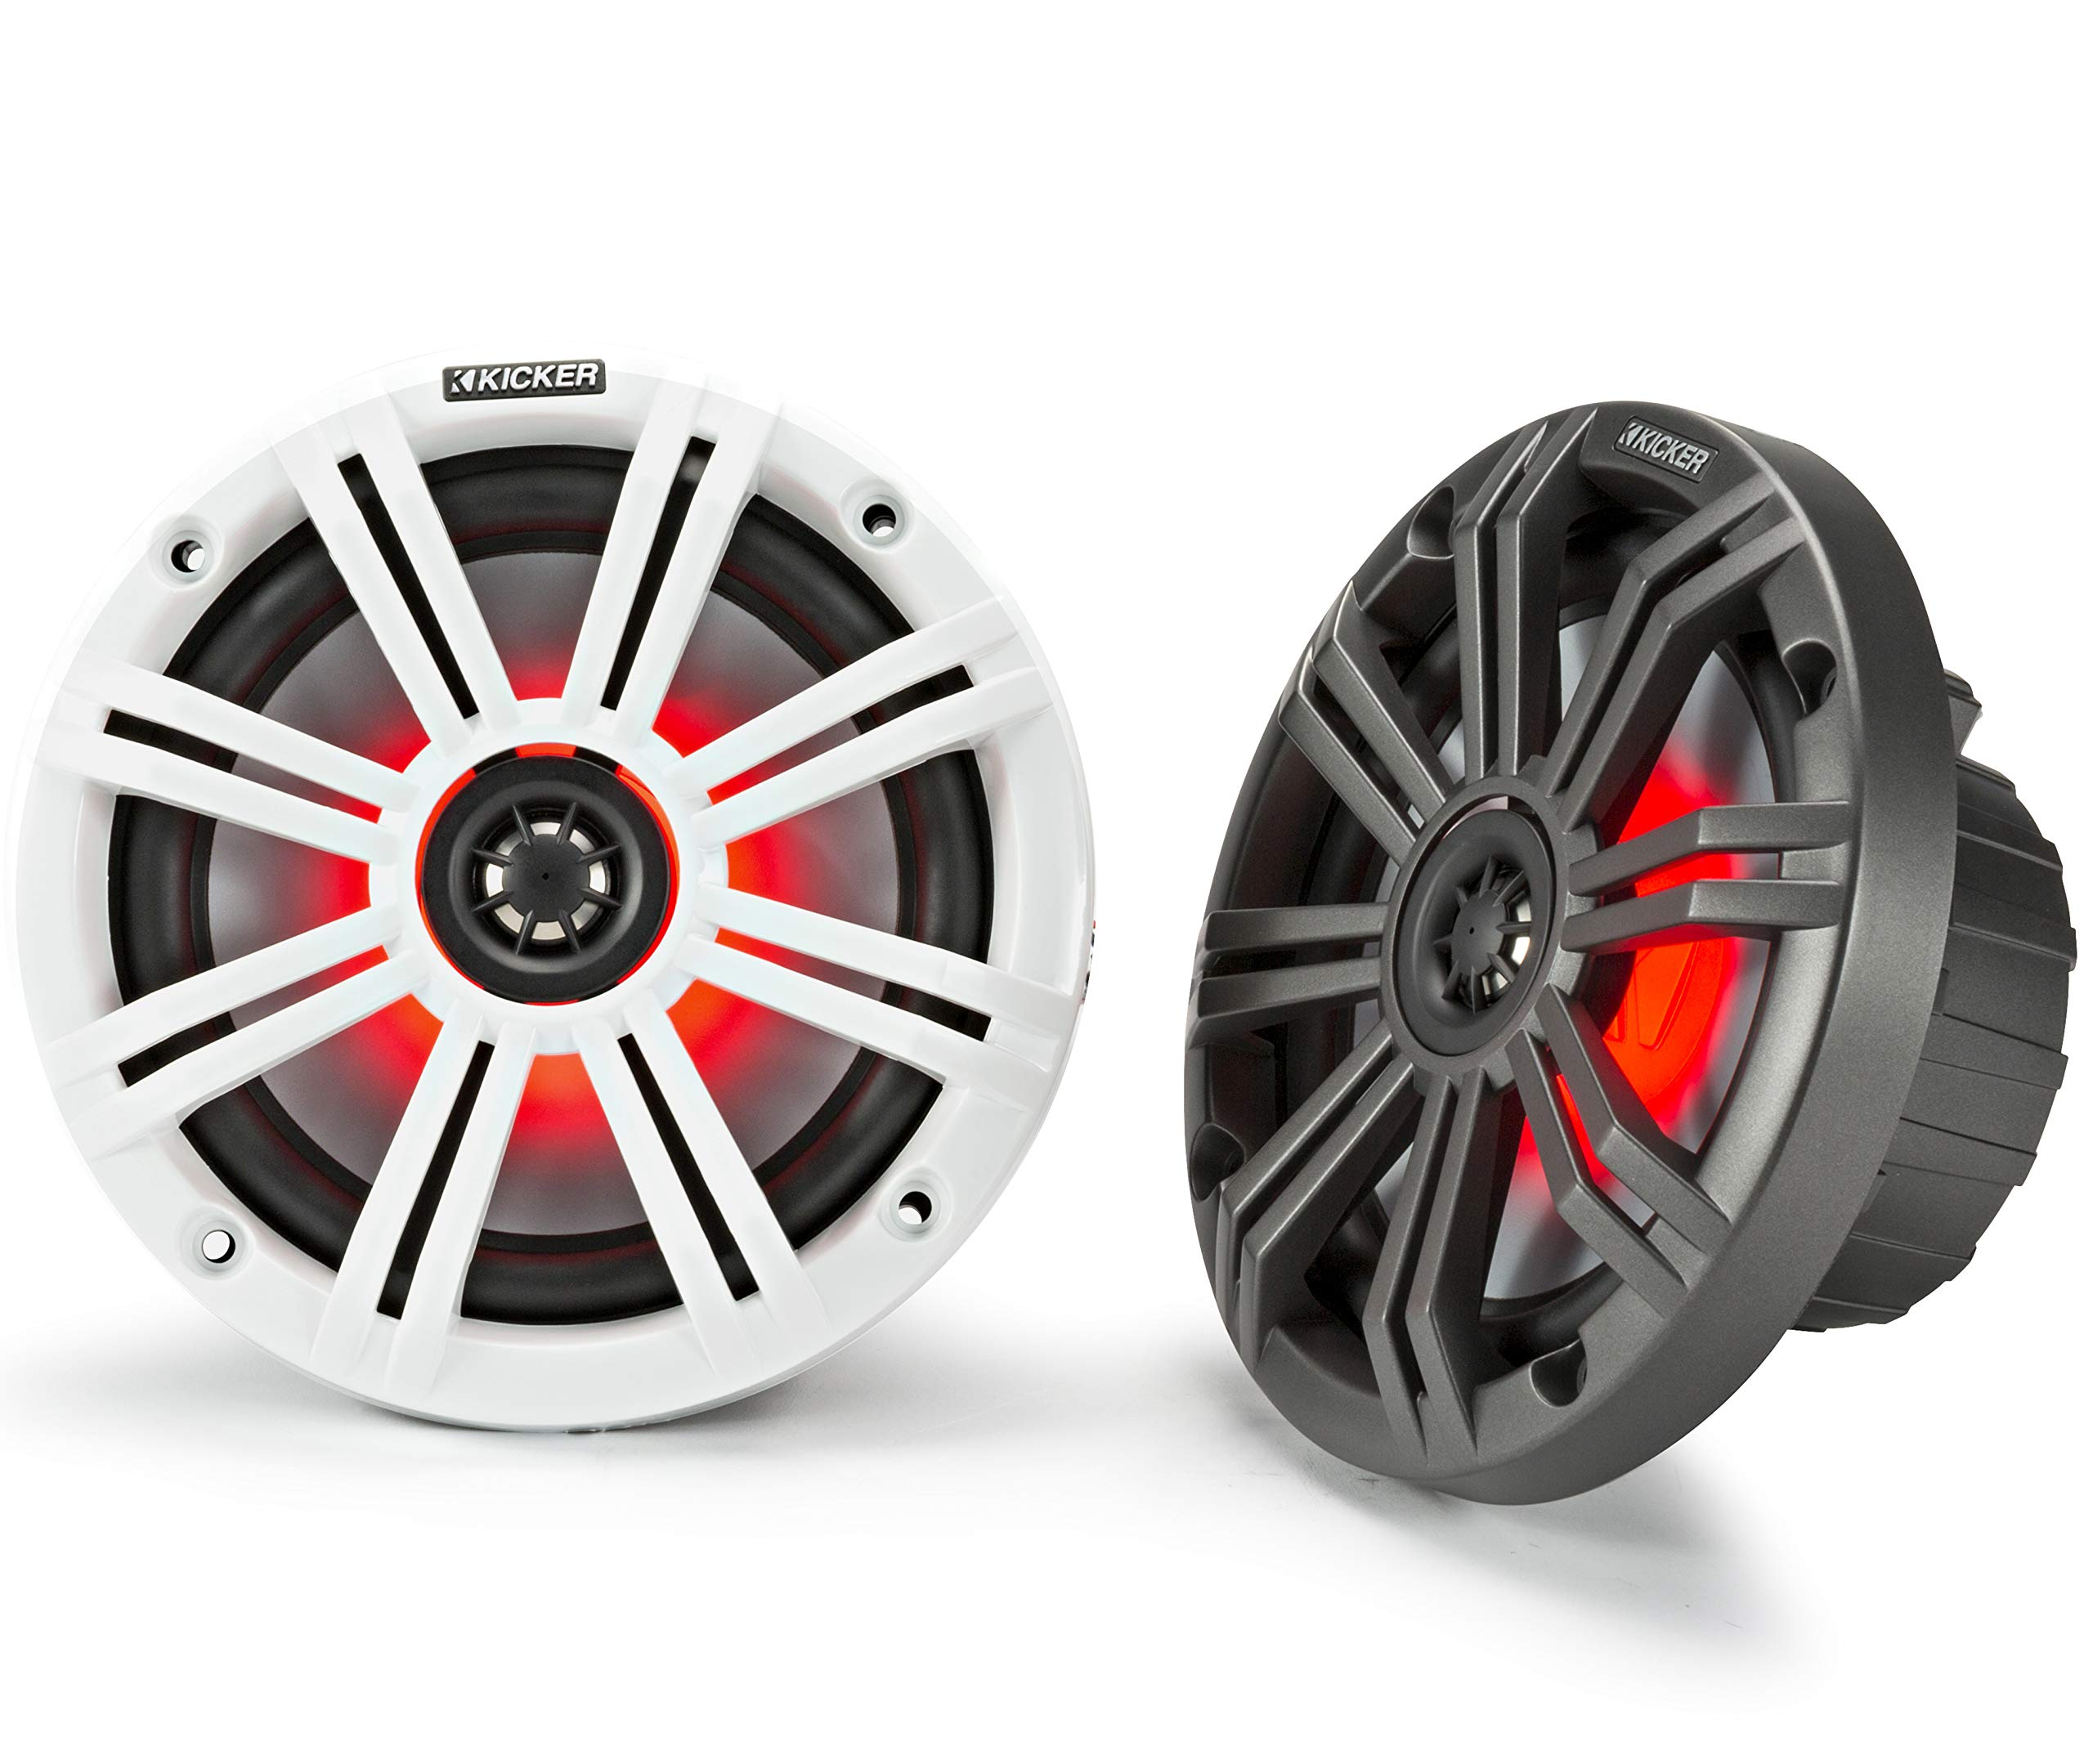 Kicker KM65 6.5-Inch (165mm) Marine Coaxial Speakers with 3/4-Inch Tweeters, LED, 4-Ohm, Charcoal and White Grilles by KICKER